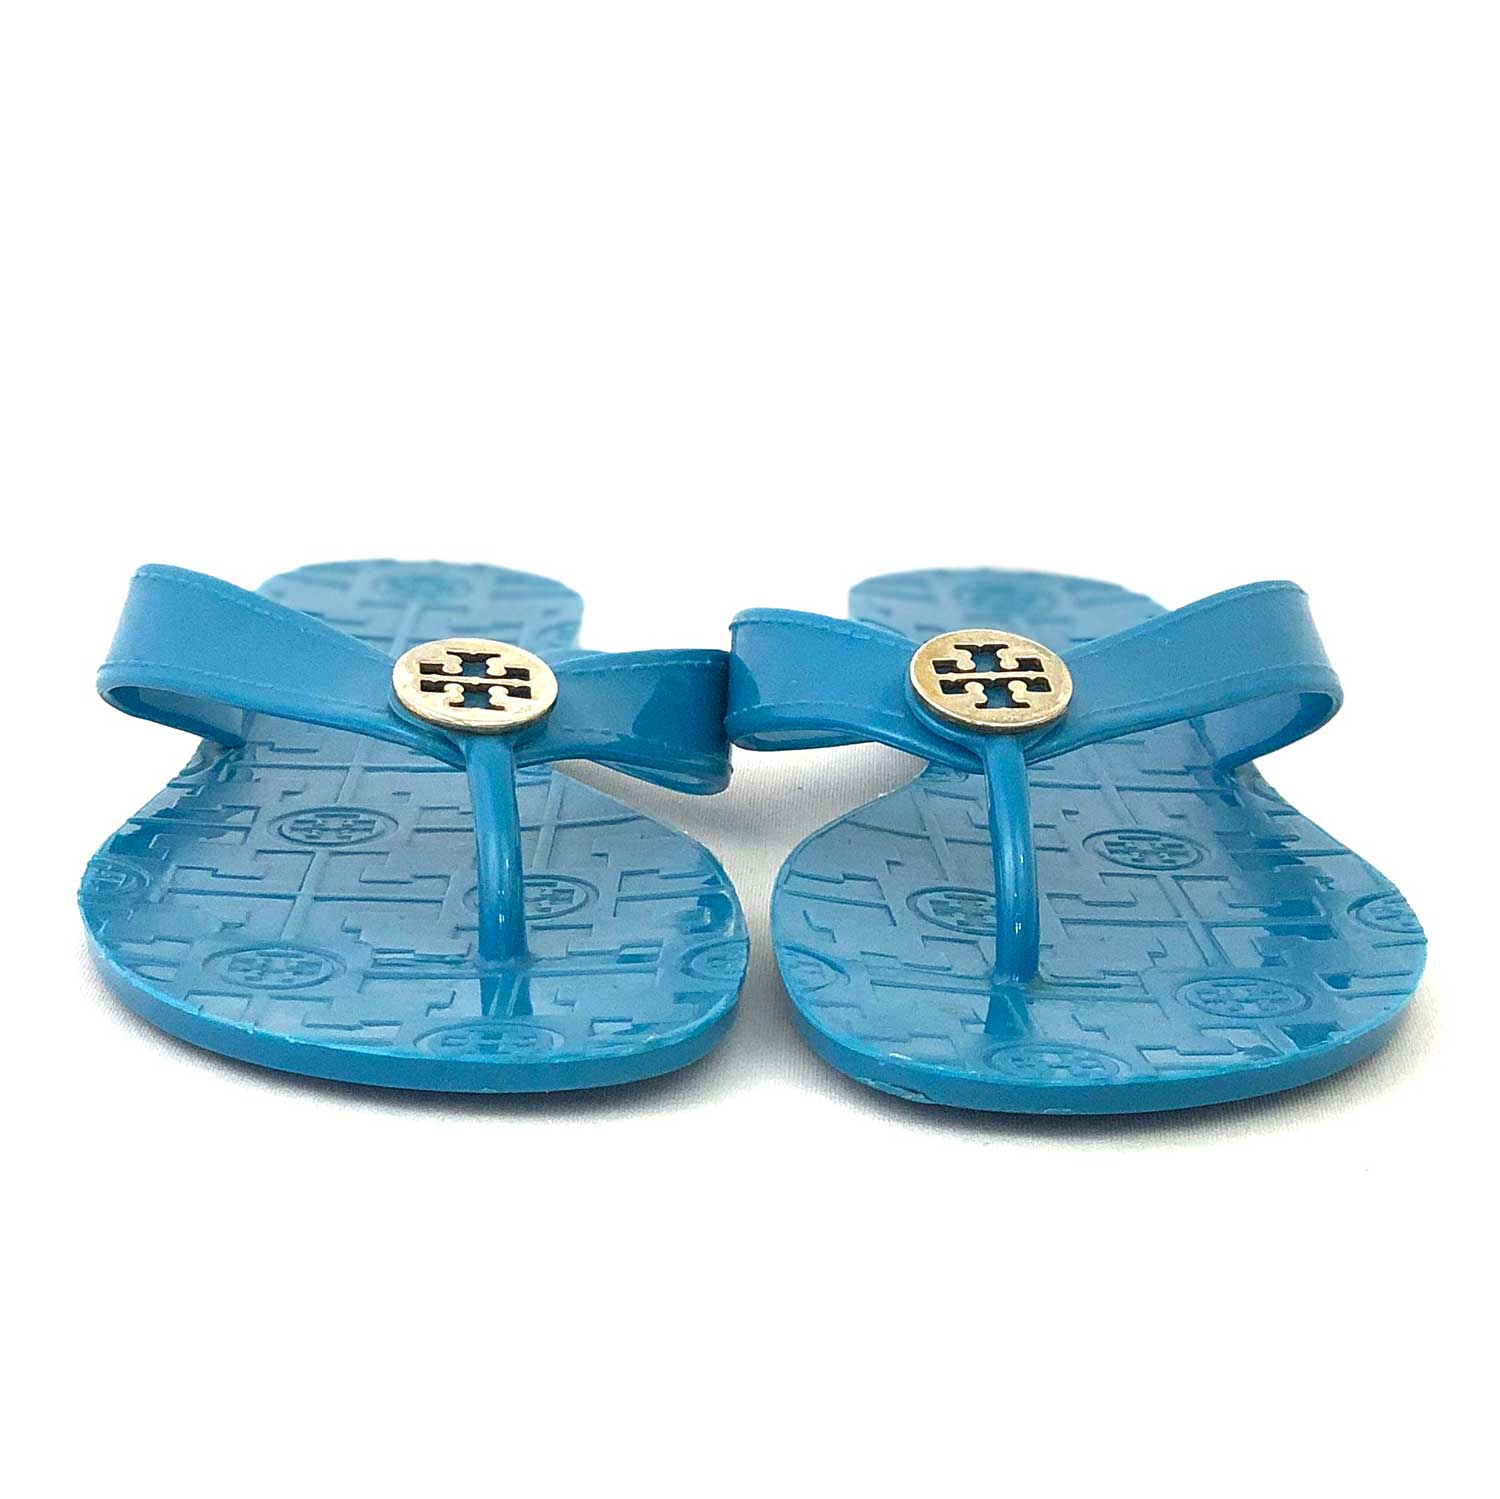 Chinelo Tory Burch Azul